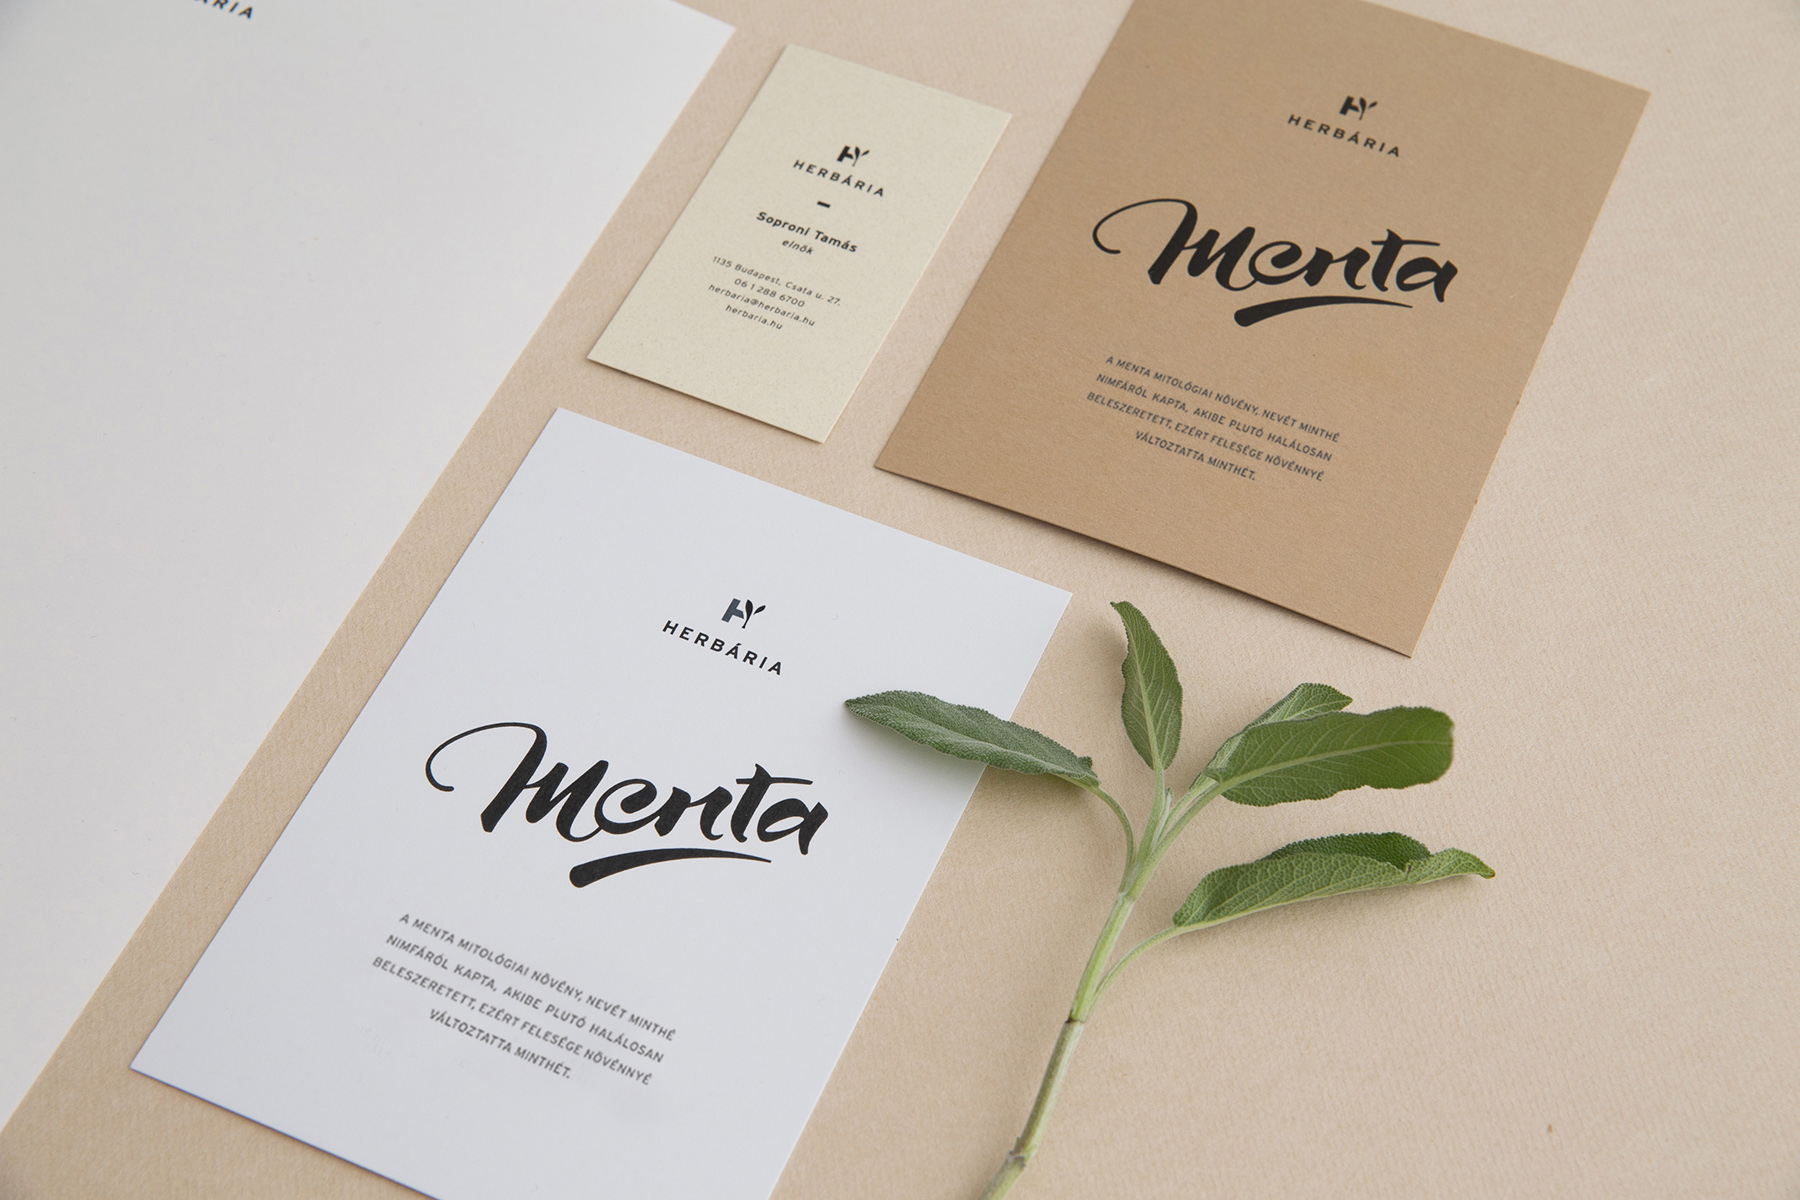 Re-imagined Identity And Packaging Design Of Herbária By Eszti Varga